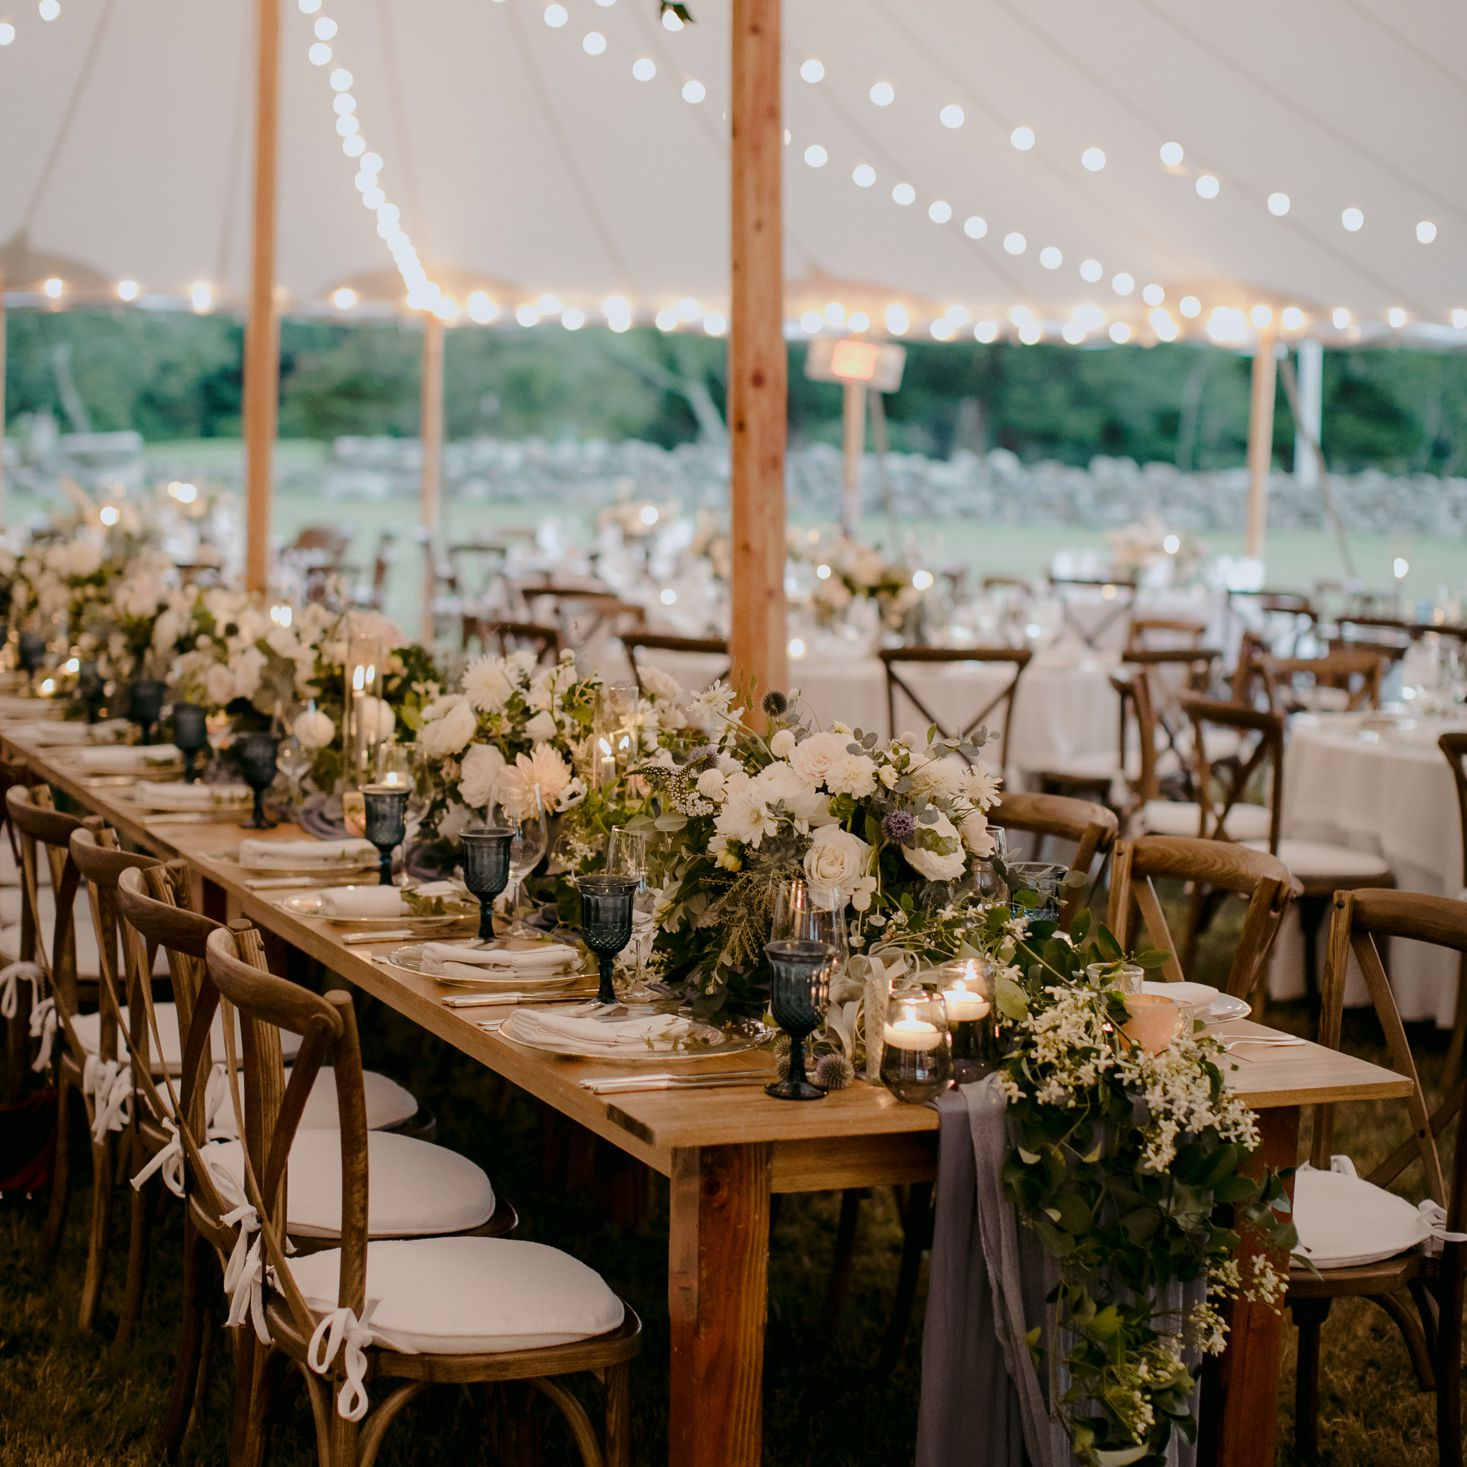 Wedding Reception Tables, Best Table Layout For Wedding Reception